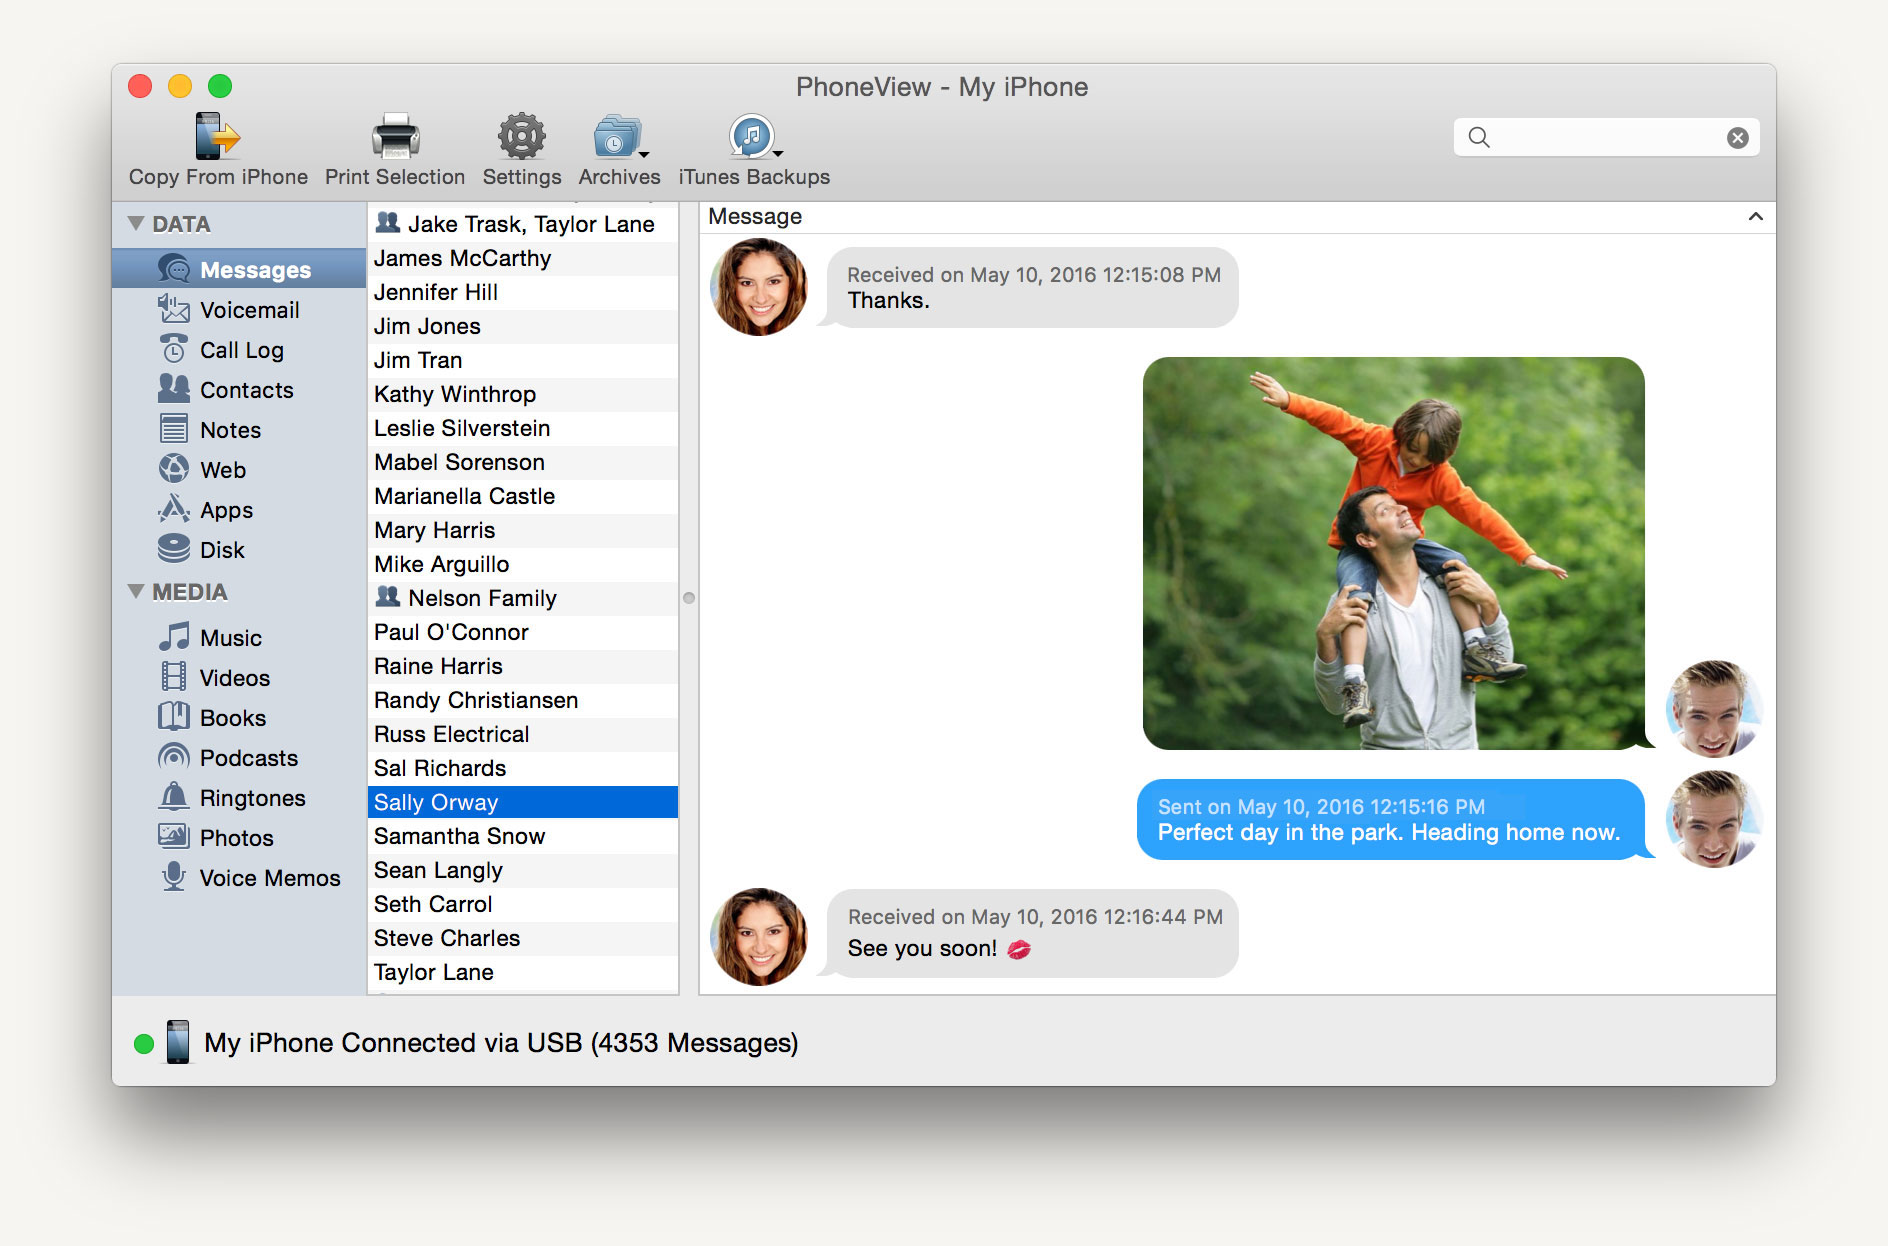 PhoneView for Mac: Save the data you love